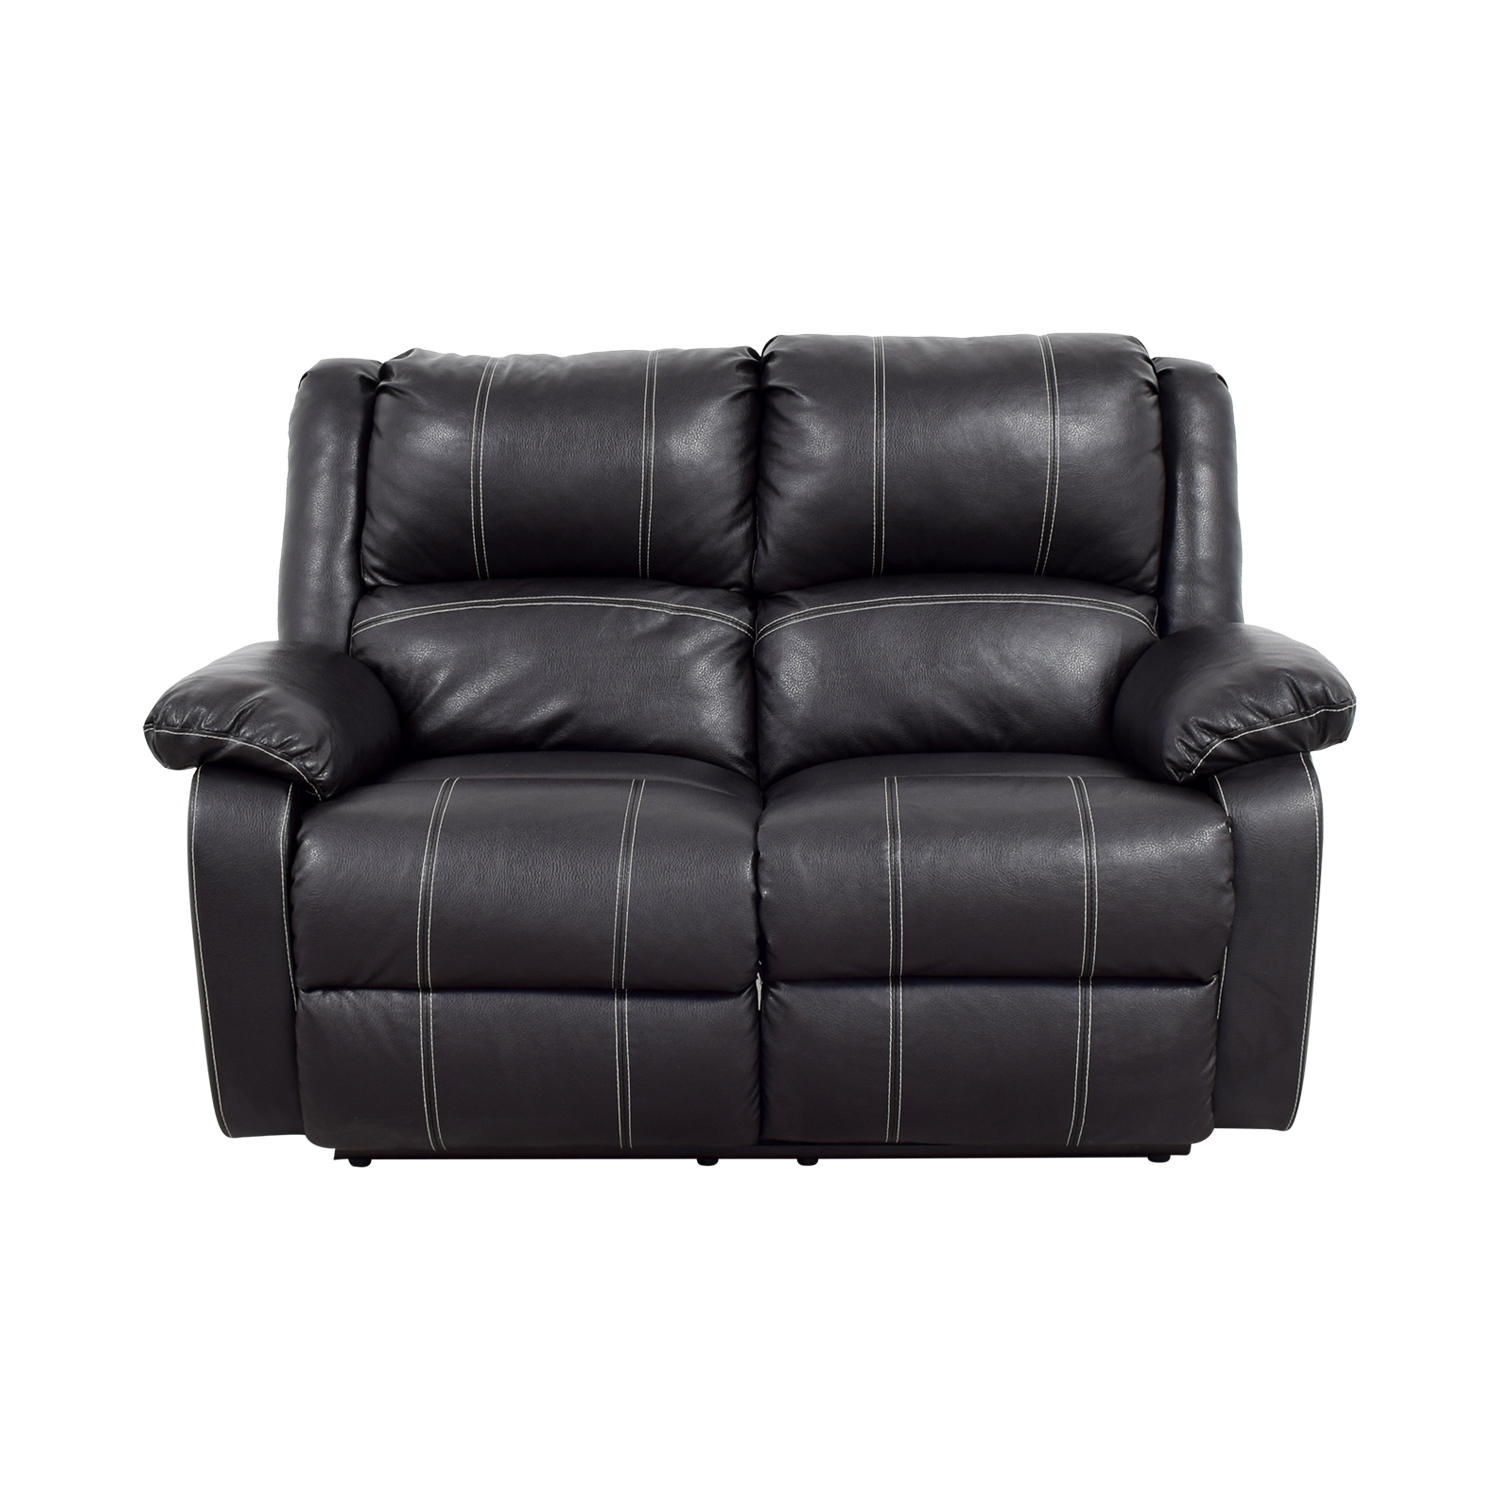 Acme Black Leather Reclining Loveseat / Loveseats